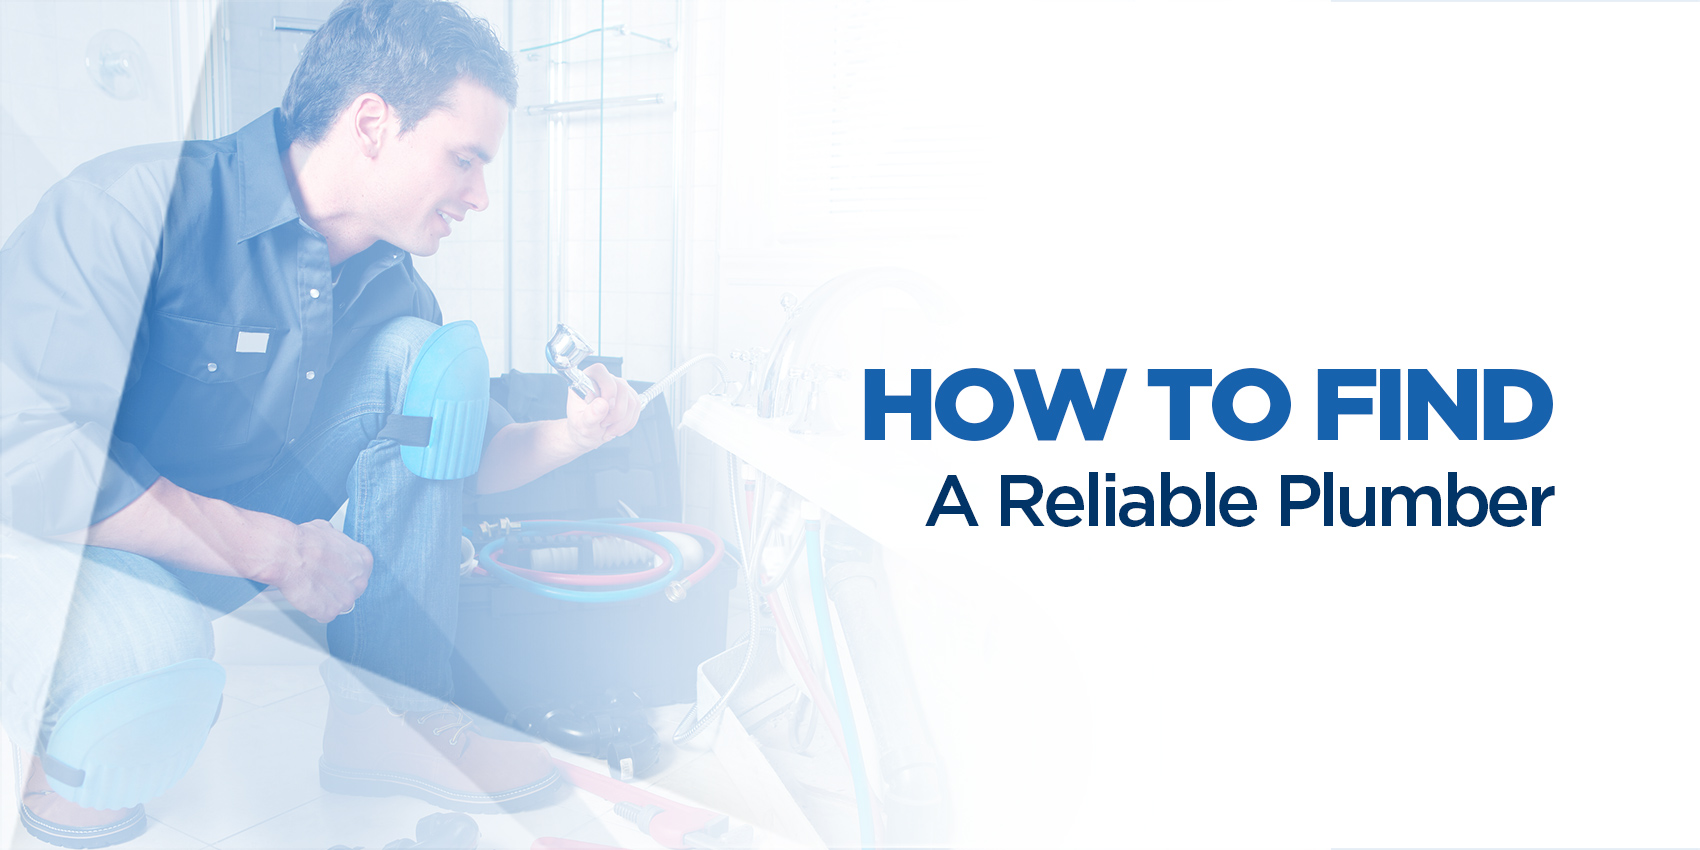 How to Find a Reliable Plumber